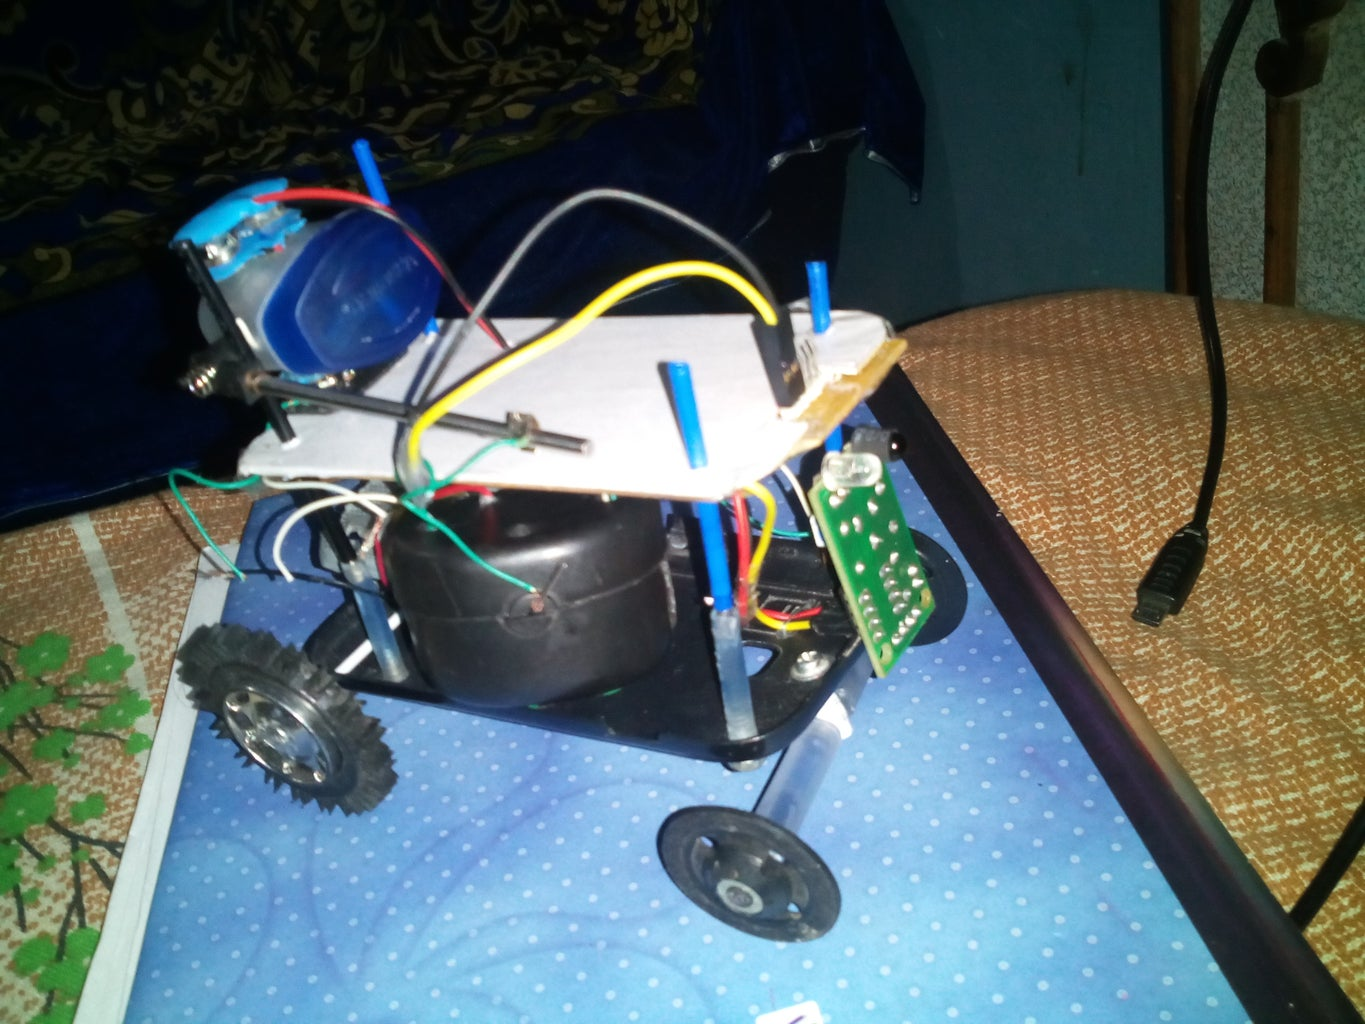 How to Make a Obstacle Avoiding Robot